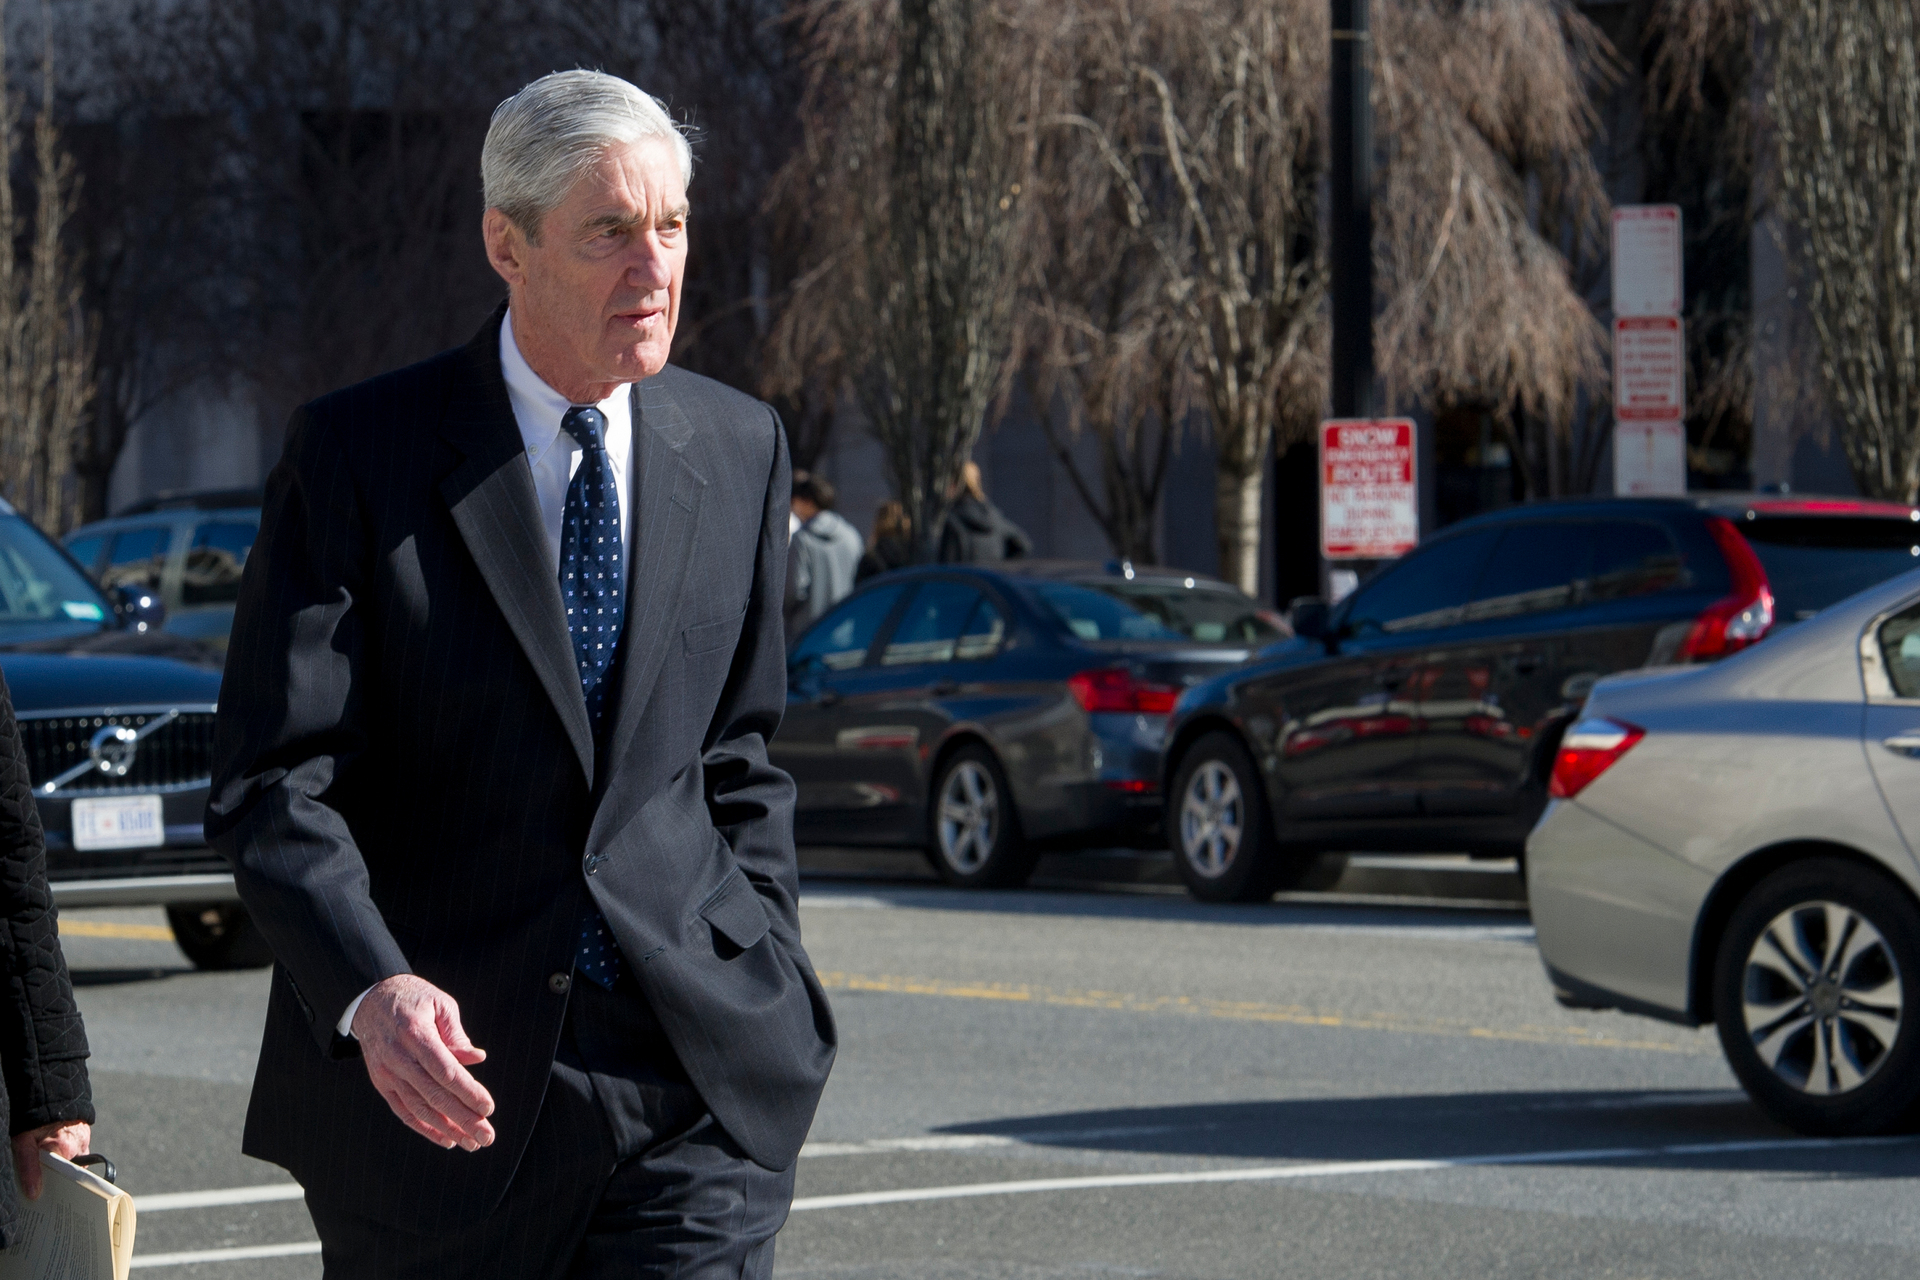 Mueller key findings: 'No conspiracy but Trump not exonerated'